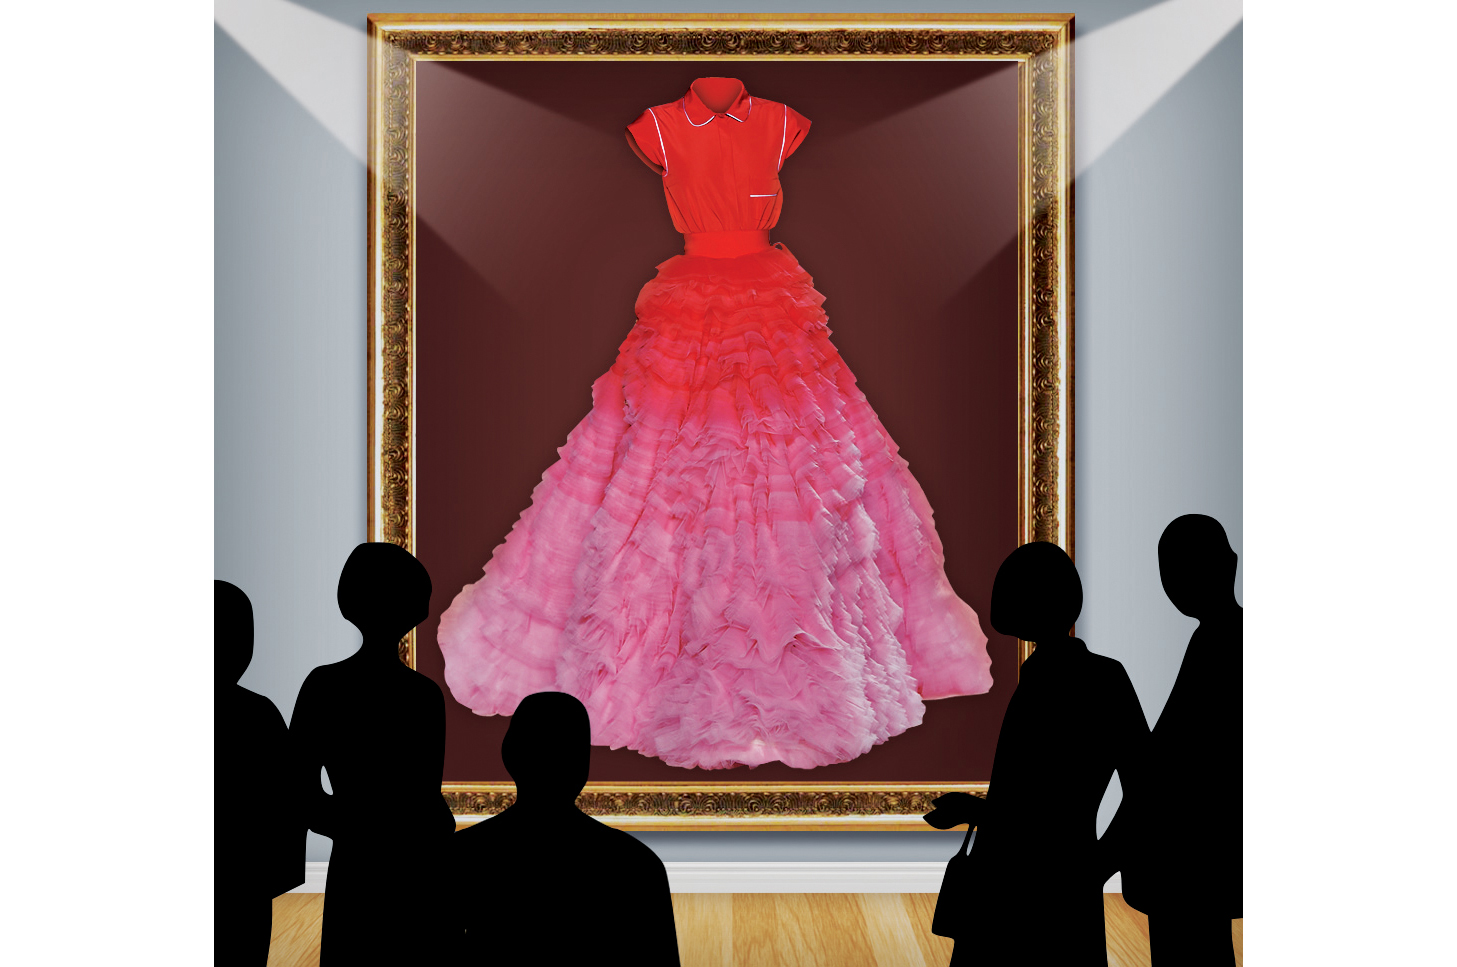 Giambattista Valli's pajama shirt and tiered tulle ballskirt from fall 2014 couture on display at the Cooper Hewitt Museum.